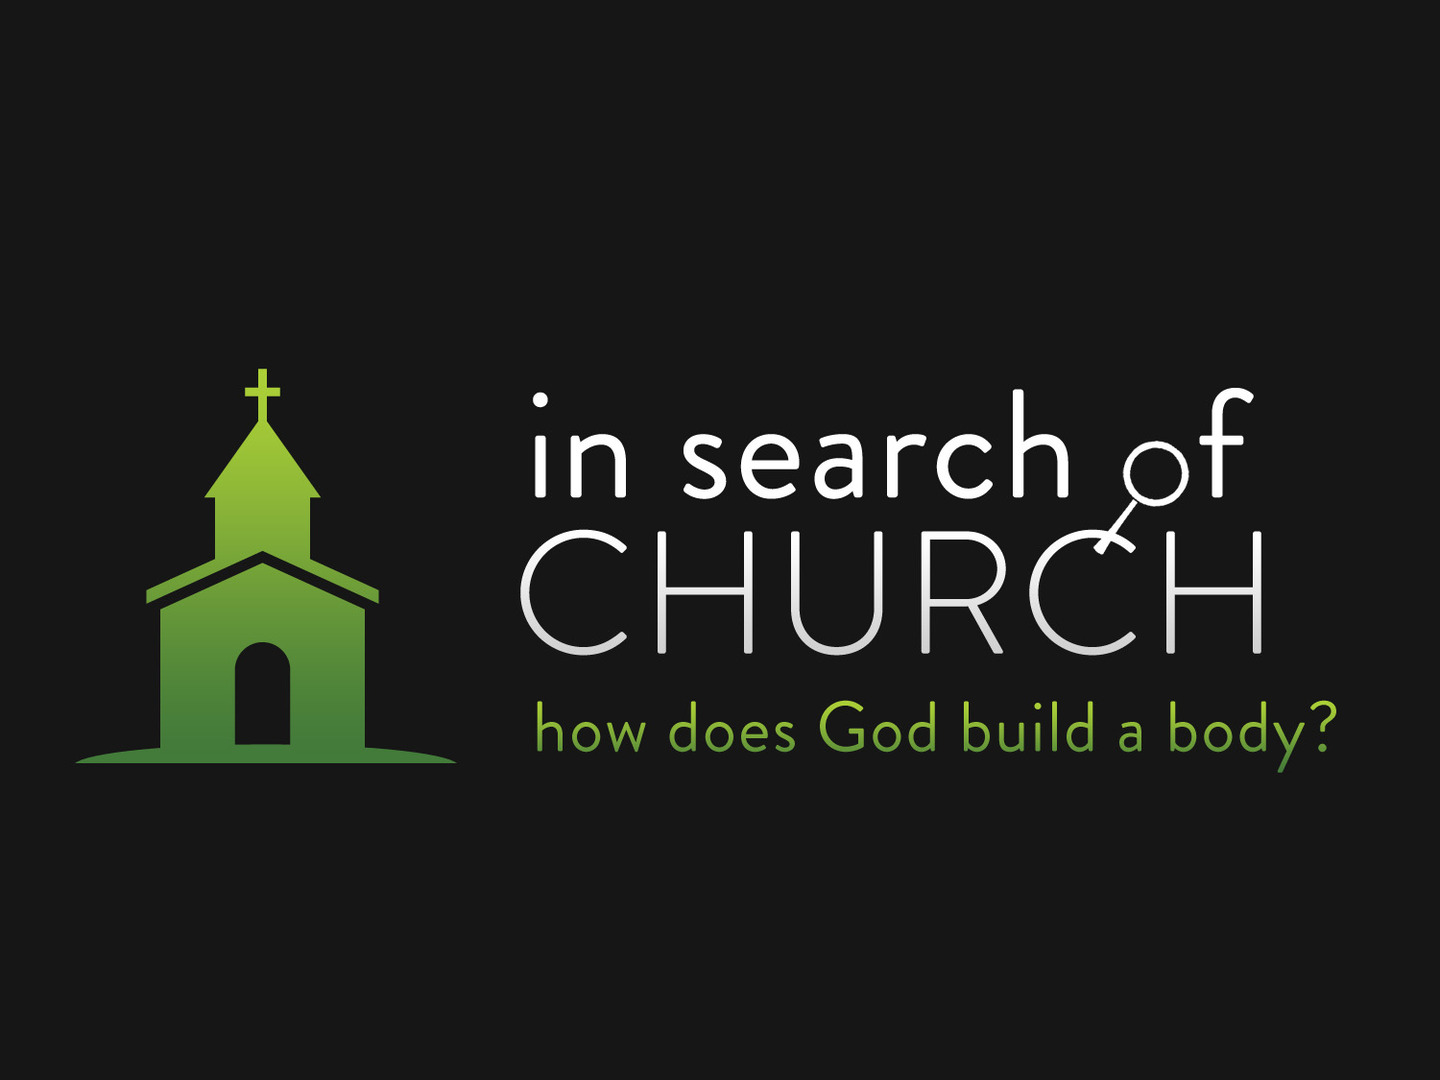 in_search_of_church-title-1-Standard 4x3